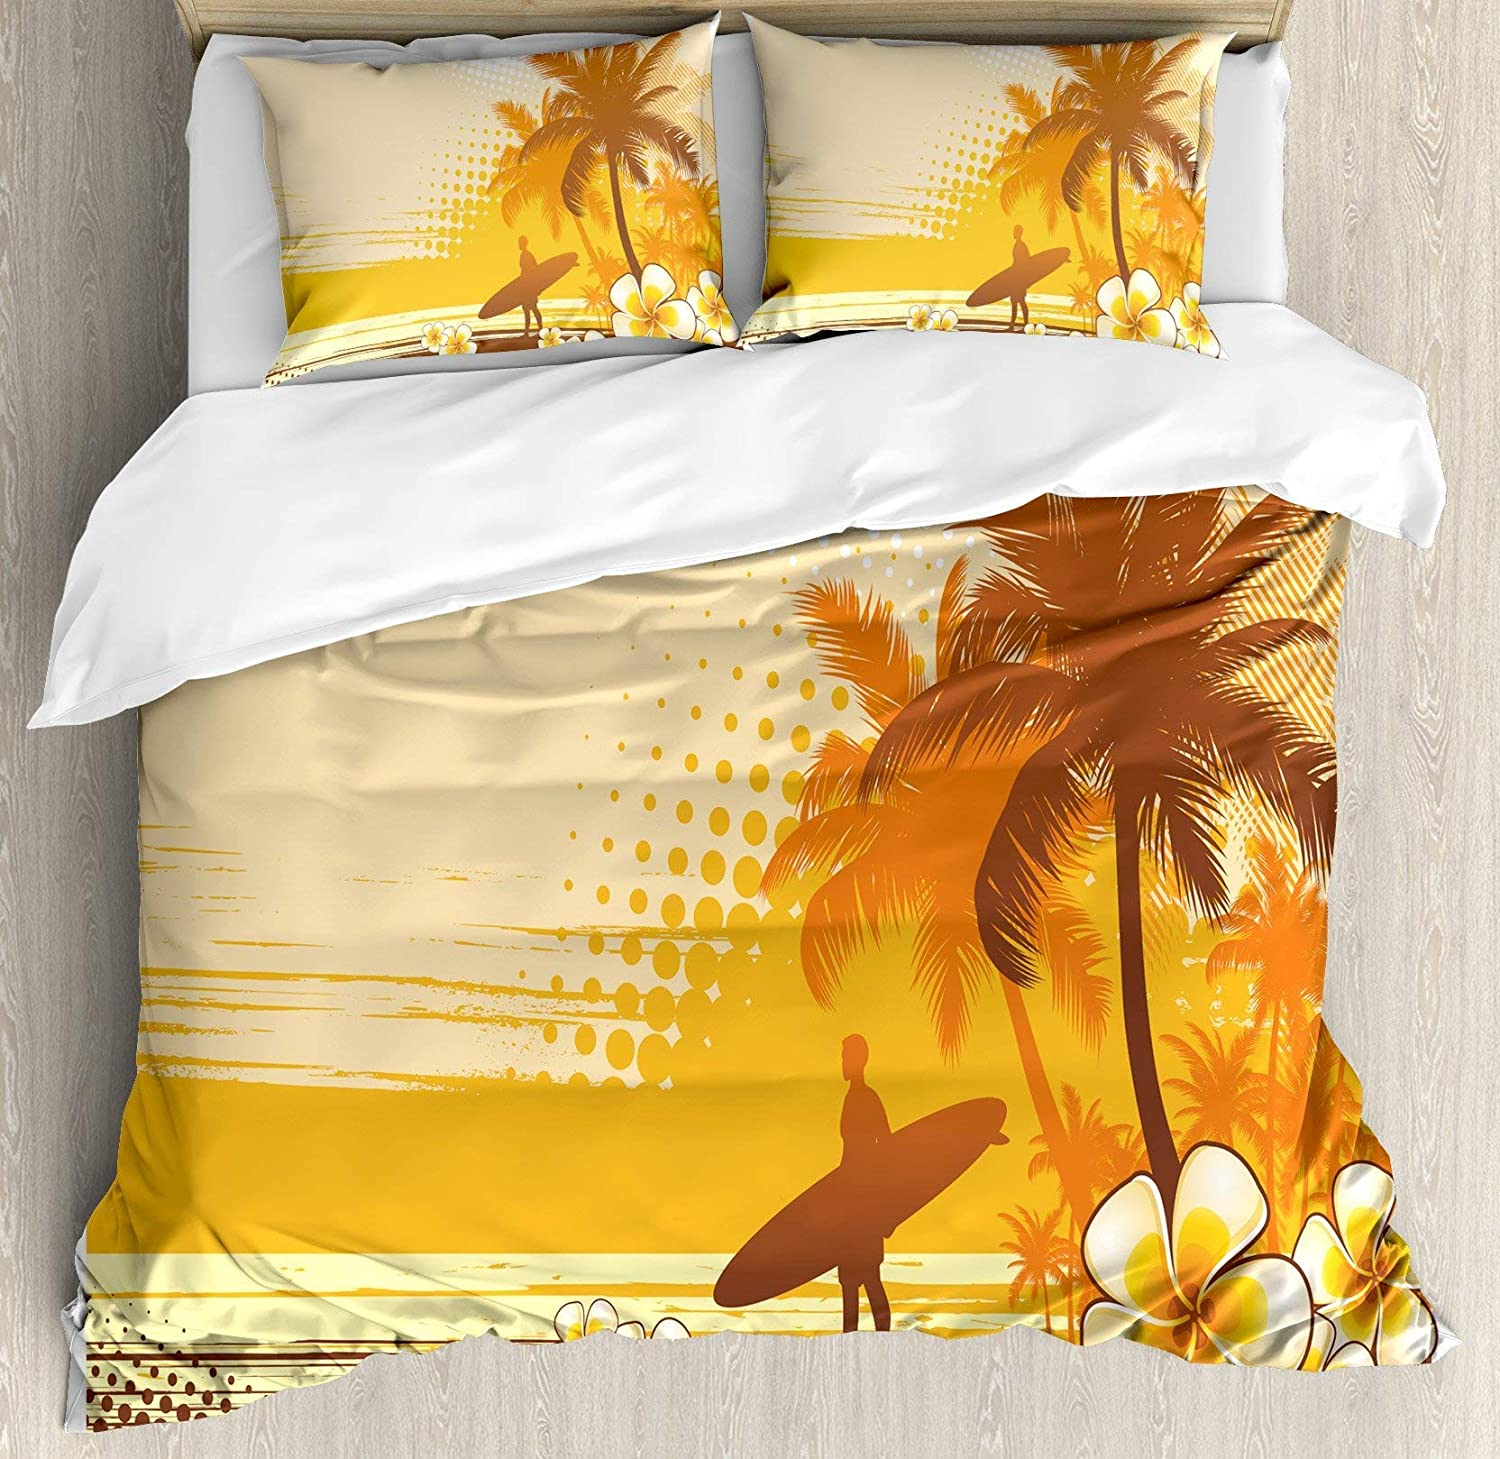 USOPHIA Surf 4 Pieces Bed Sheets Set Twin Size, Silhouette Surfer Tropical Landscape Free Your Mind Artsy Illustration Floral Duvet Cover Set, Yellow Brown orange